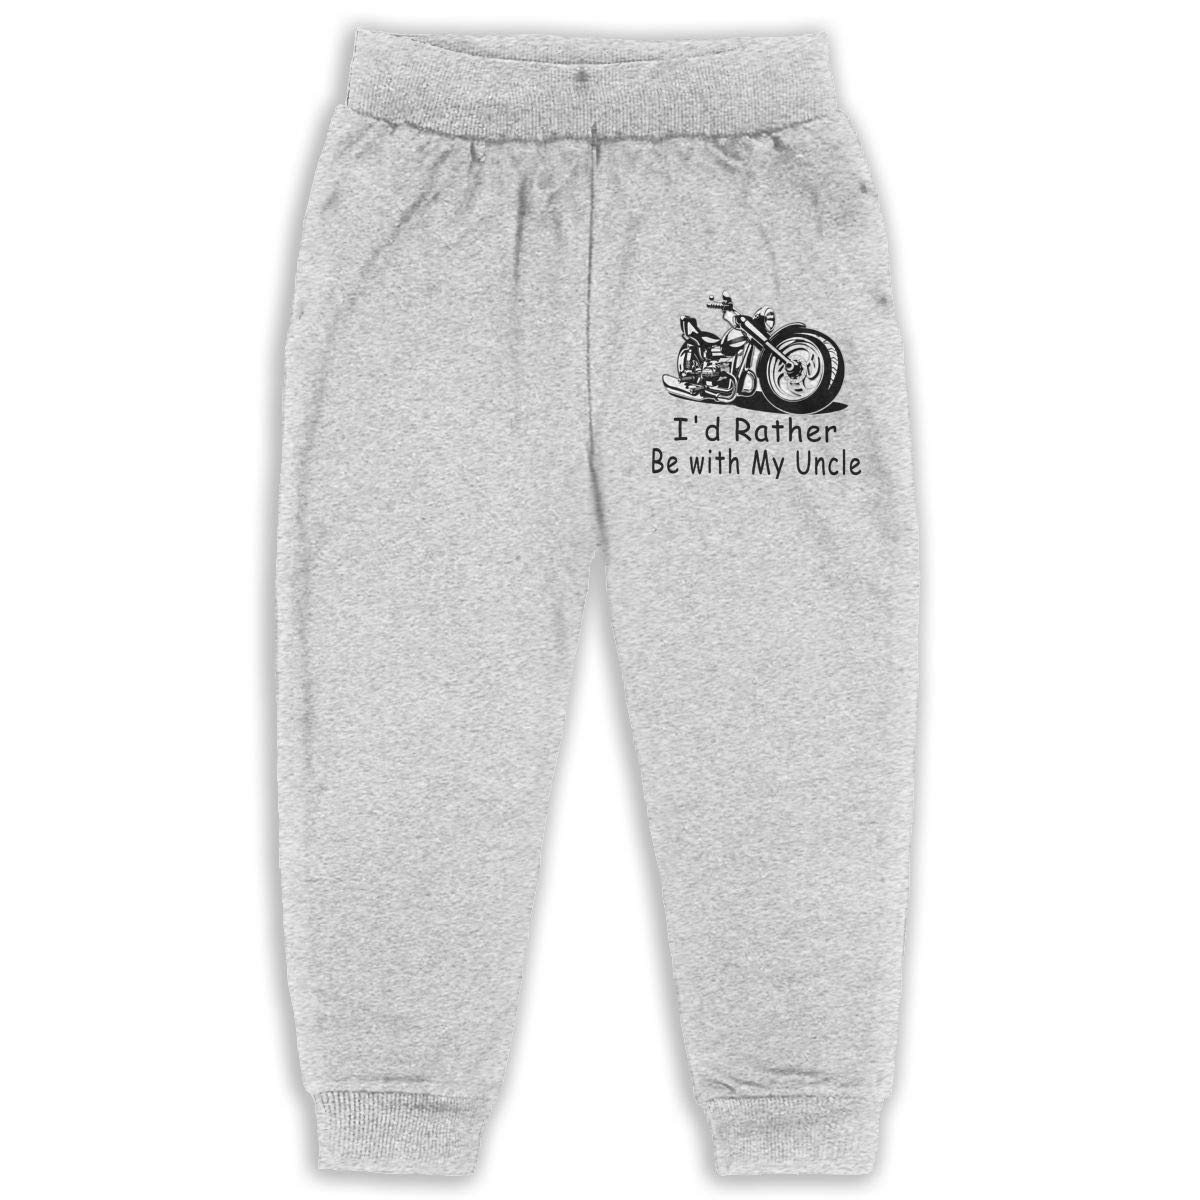 Roli-Land Unisex Girls Id Rather Be with My Uncle Fashion Daily Sweatpants Gray Gift with Pockets Pajamas